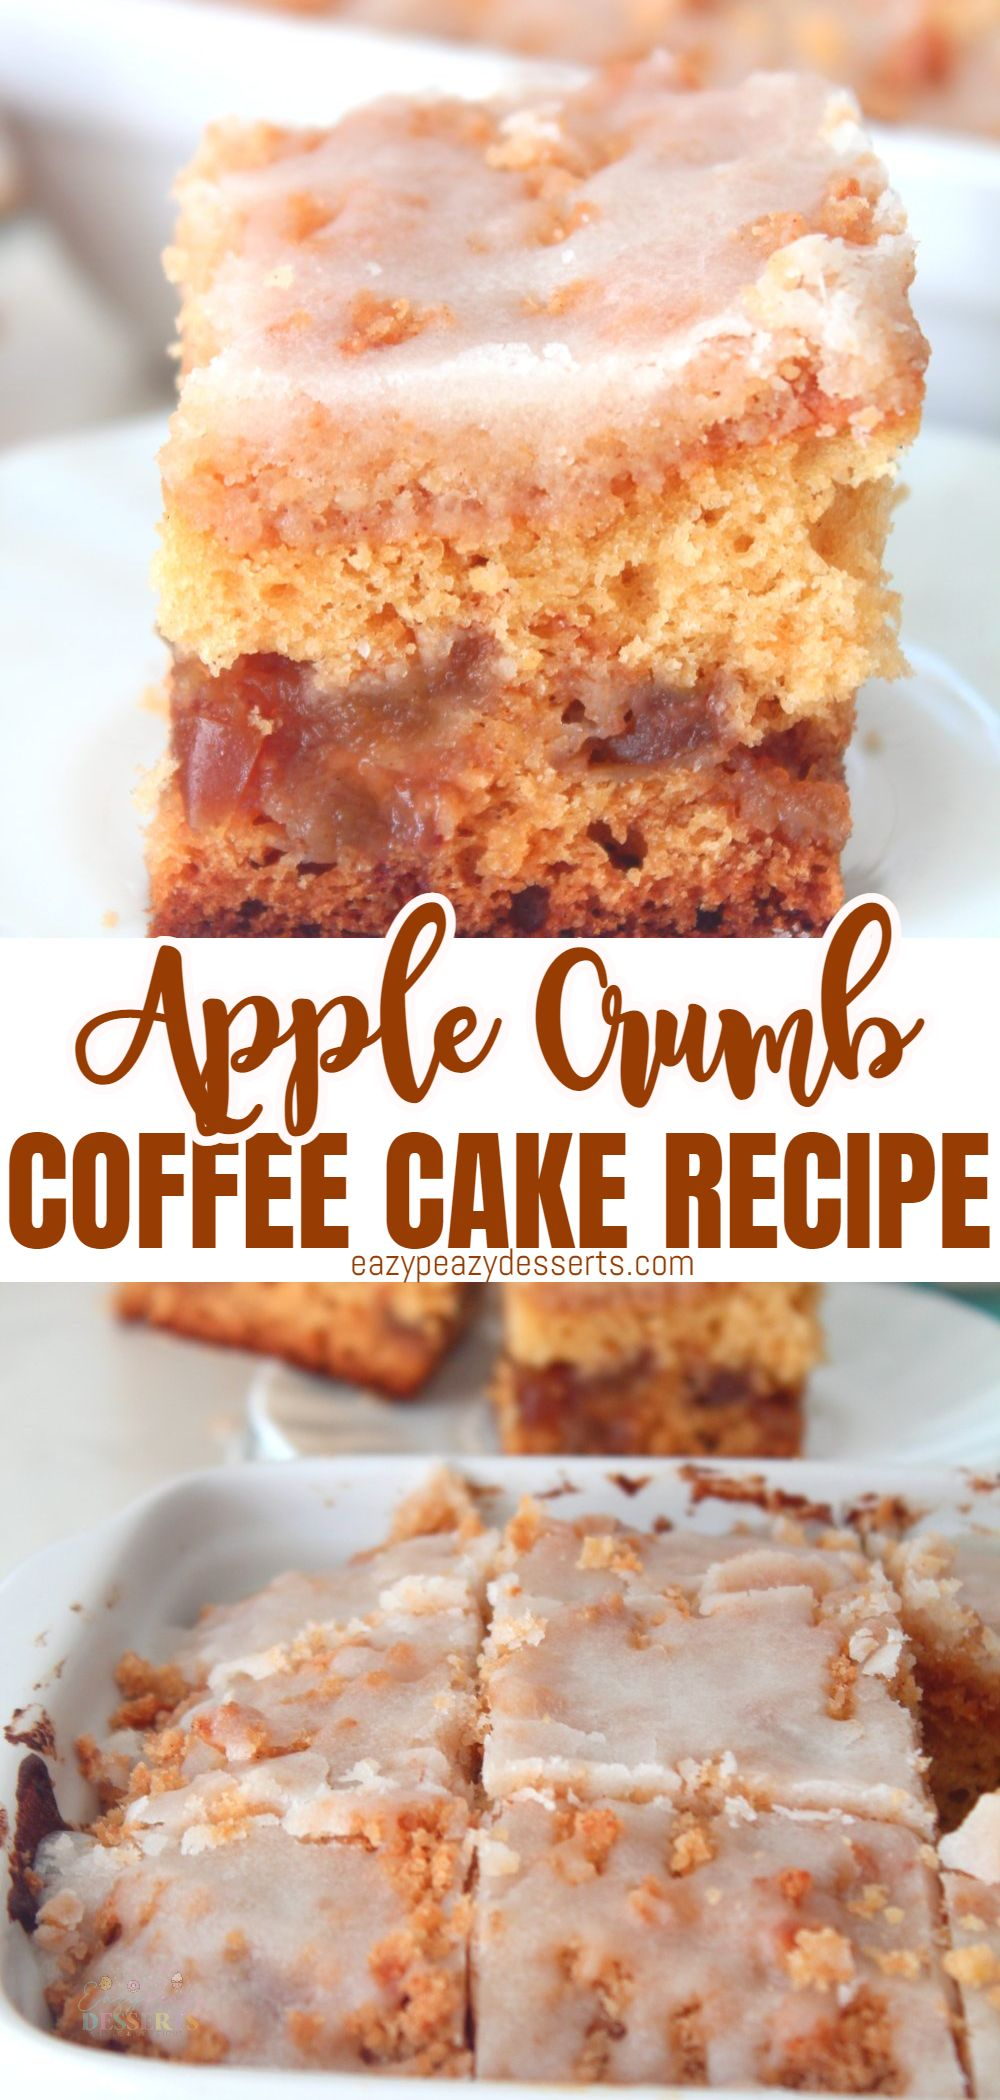 Apples and coffee? Nope, just a delicious crumb cake with apples and cinnamon you would have with coffee. Or tea, or just like that. Today I'm going to show you an amazing and super-easy apple coffee cake recipe you can make in literally no-time! via @eazypeazydesserts